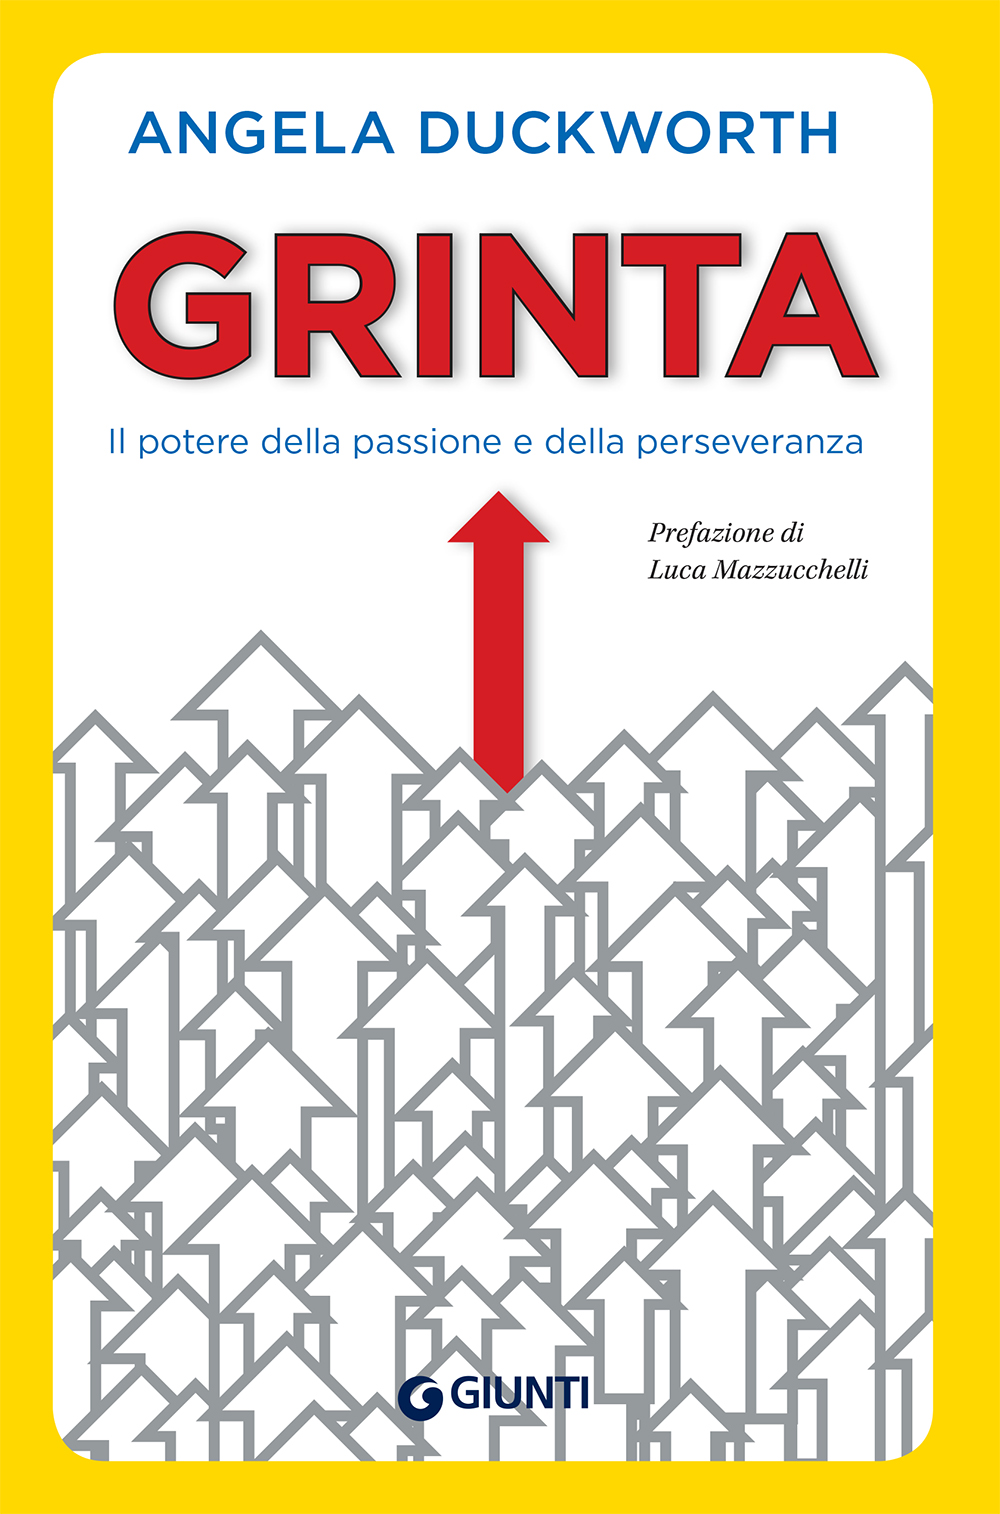 Grinta – Angela Duckworth